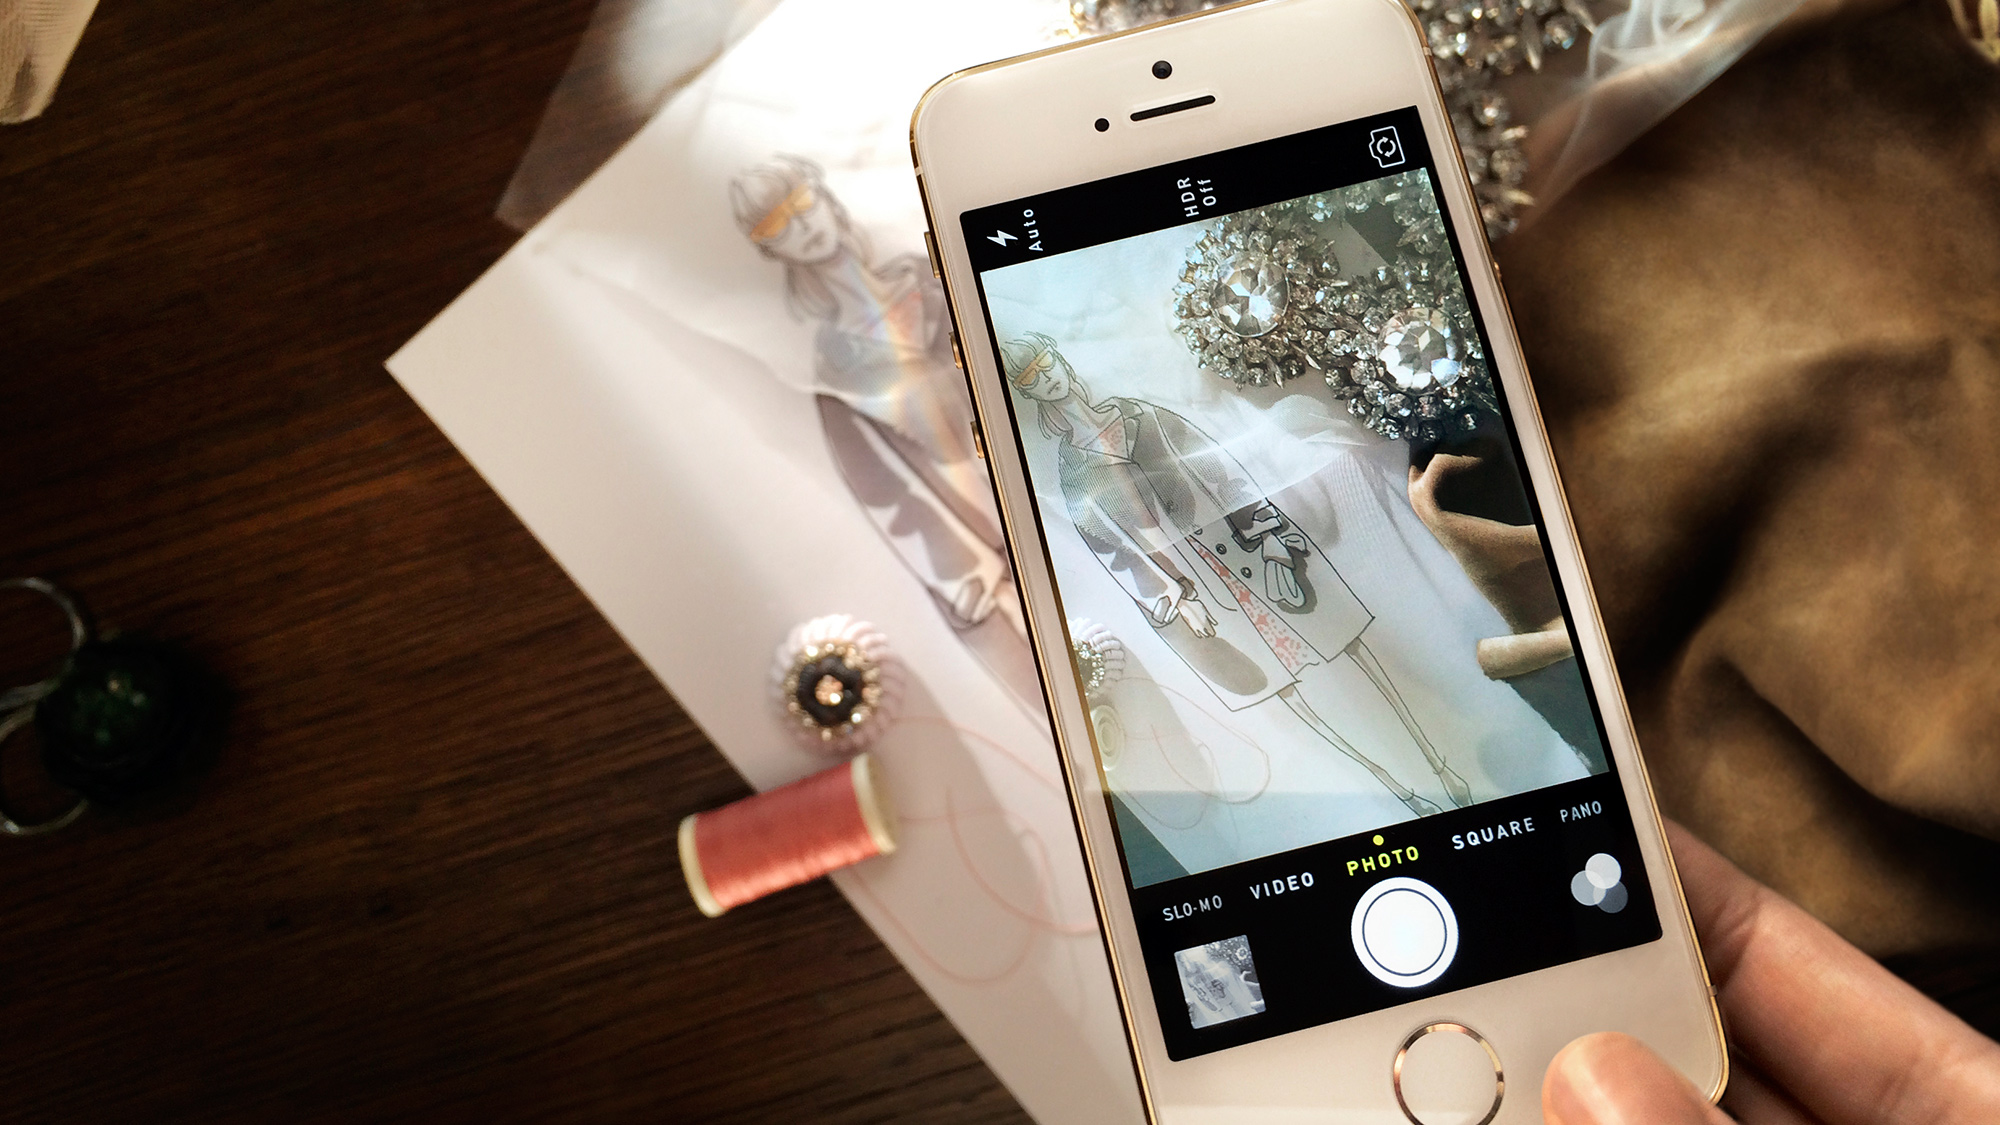 Burberry Will Use An iPhone 5s To Capture The London Fashion Show